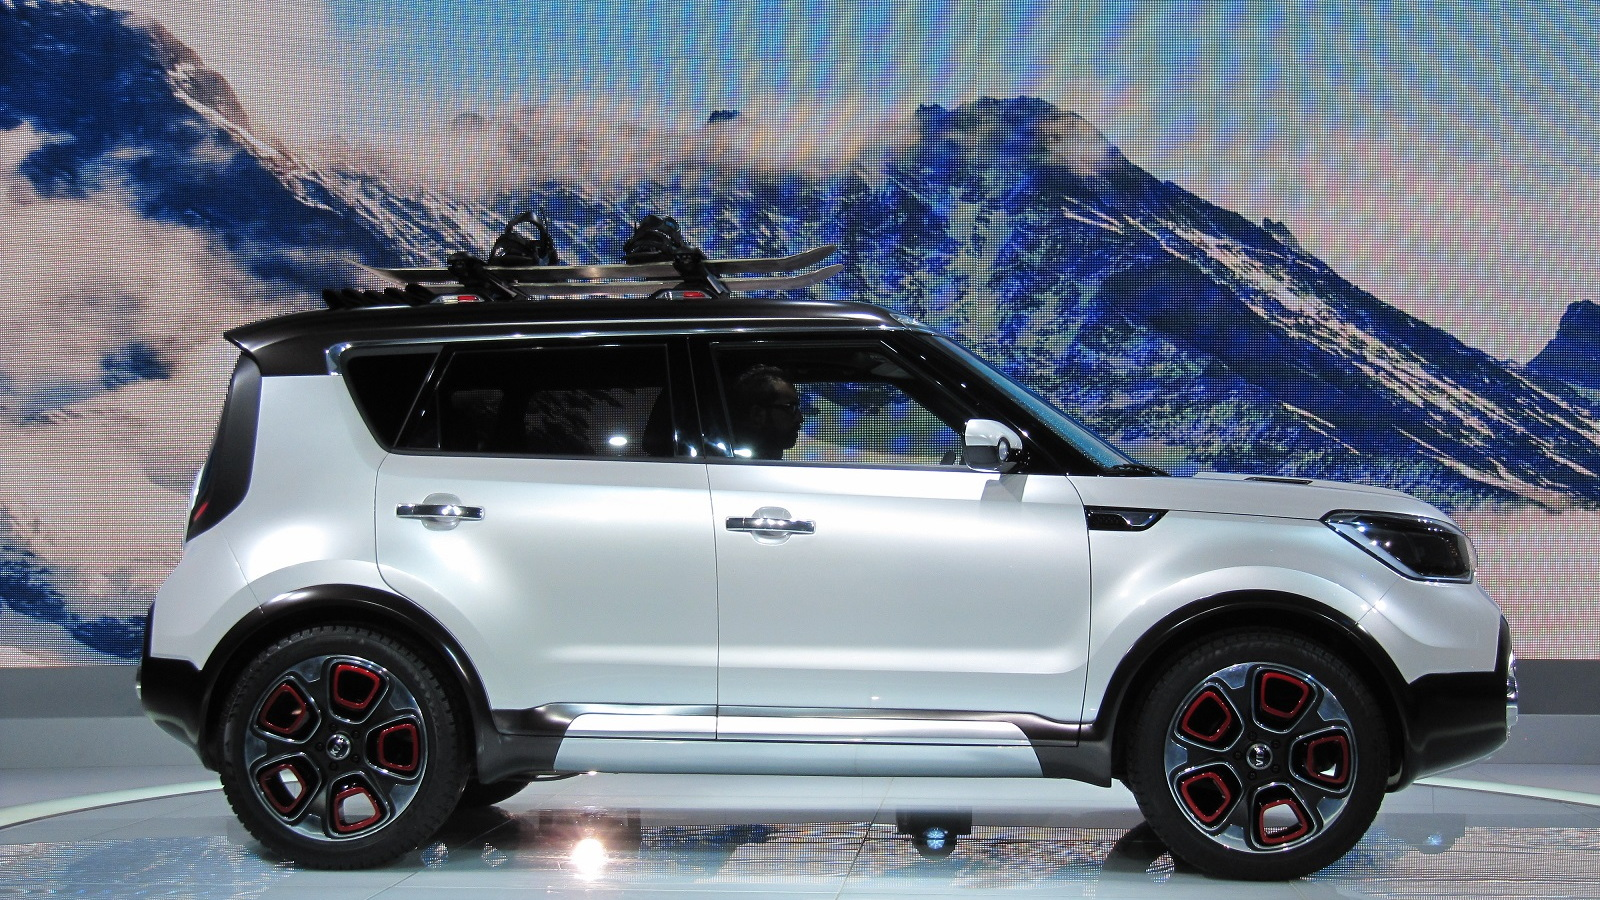 Kia Soul Awd >> Kia Soul Based Trail Ster Concept Features Electric Awd Live Photos